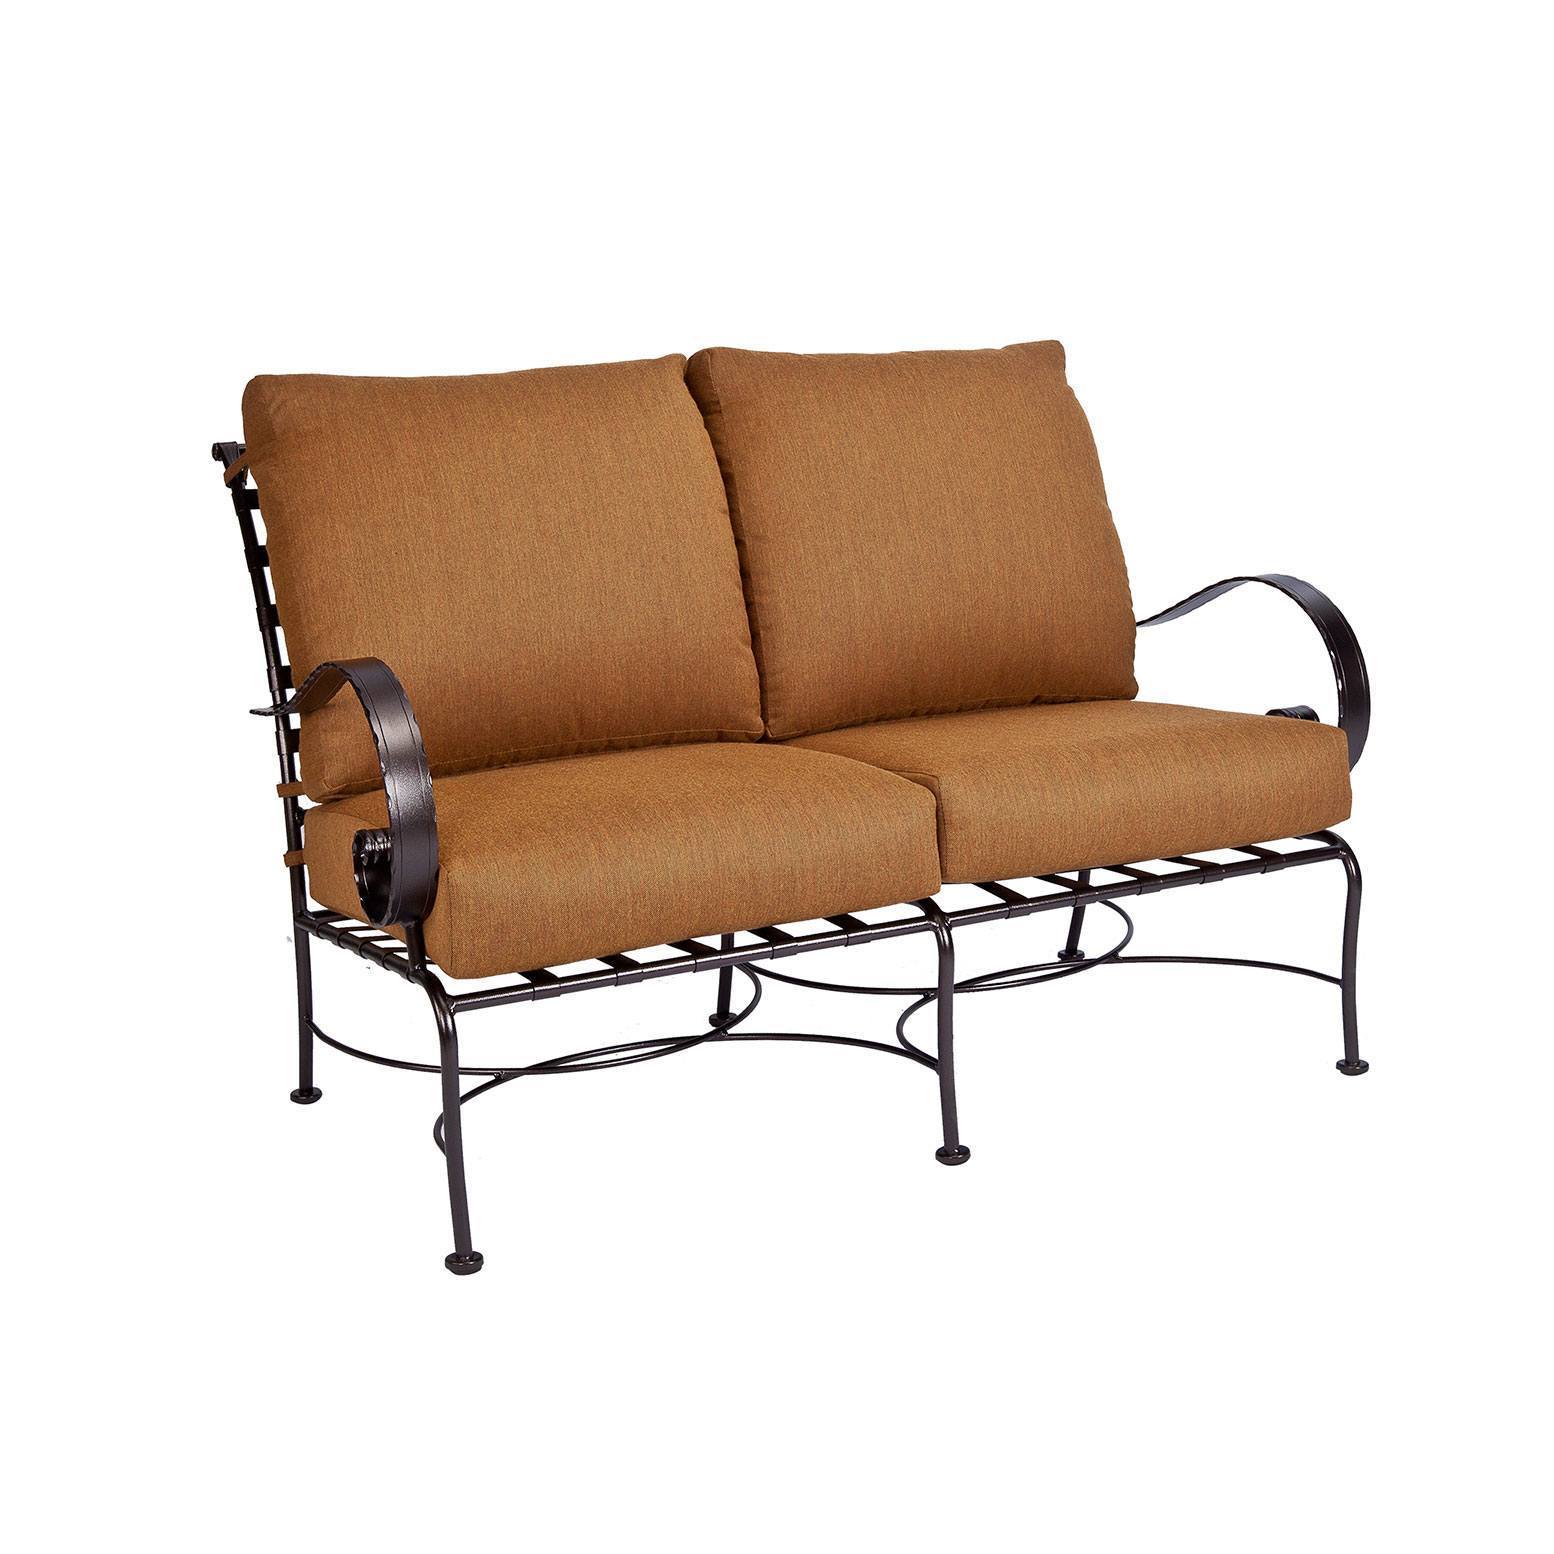 Ow Lee Classico Love Seat Leisure Living